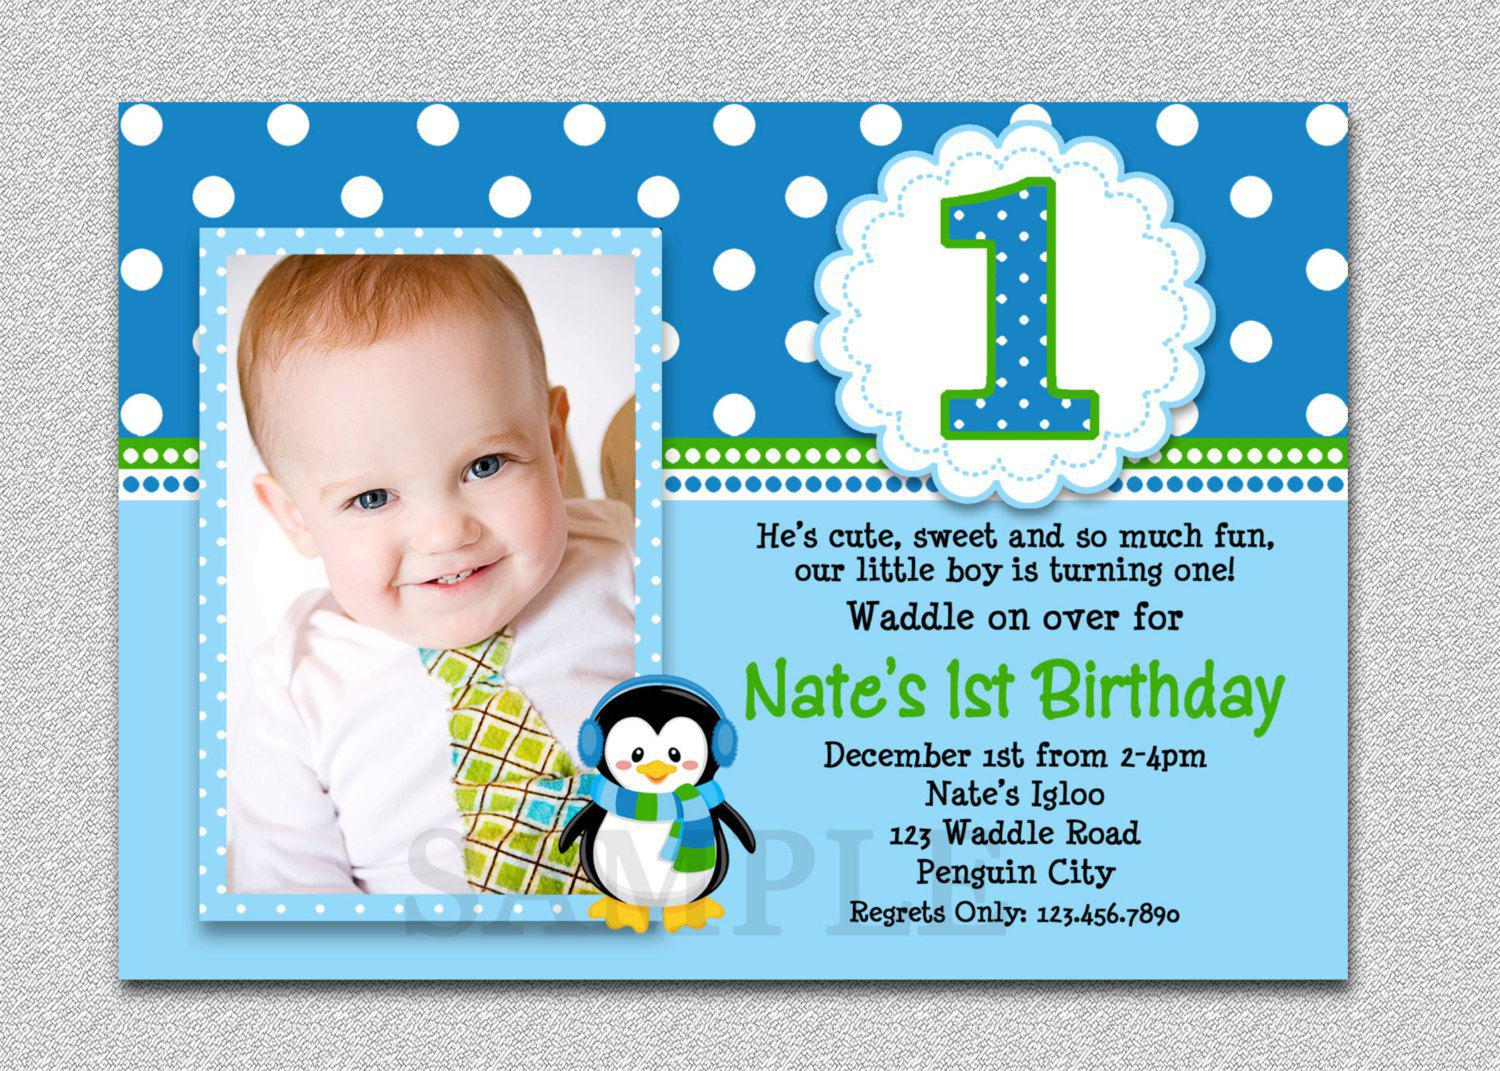 16 best first birthday invites printable sample templates source purpletrail first birthday invitations for kids birhday invites create stopboris